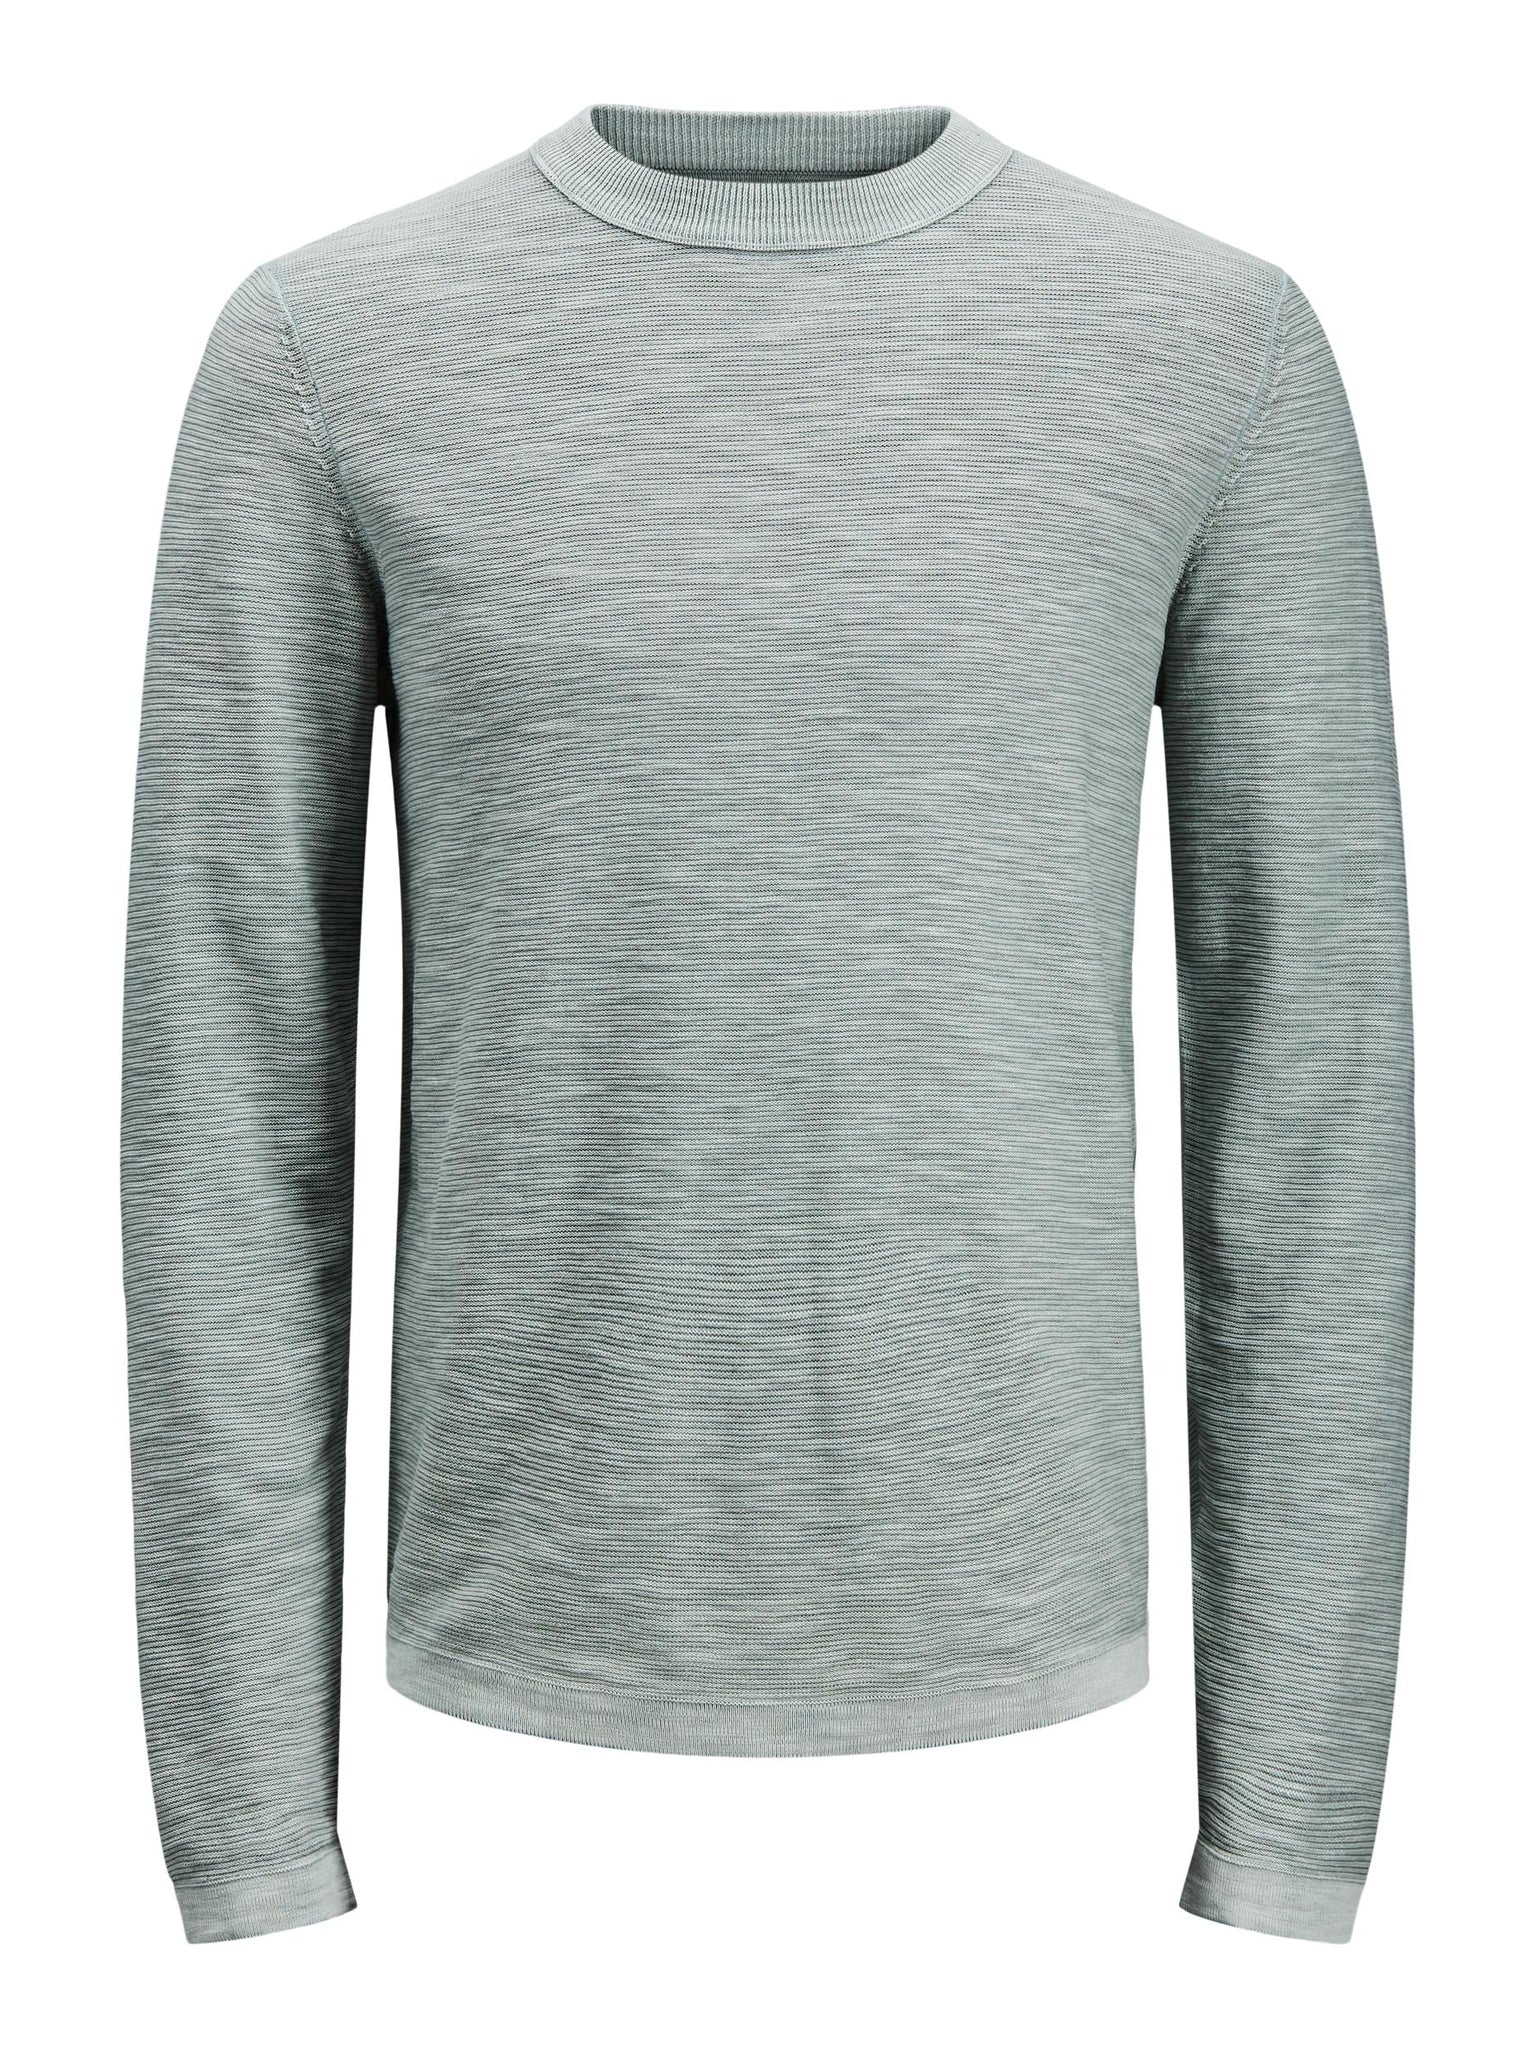 Jack and Jones Herren Knit Pullover Green Milieu